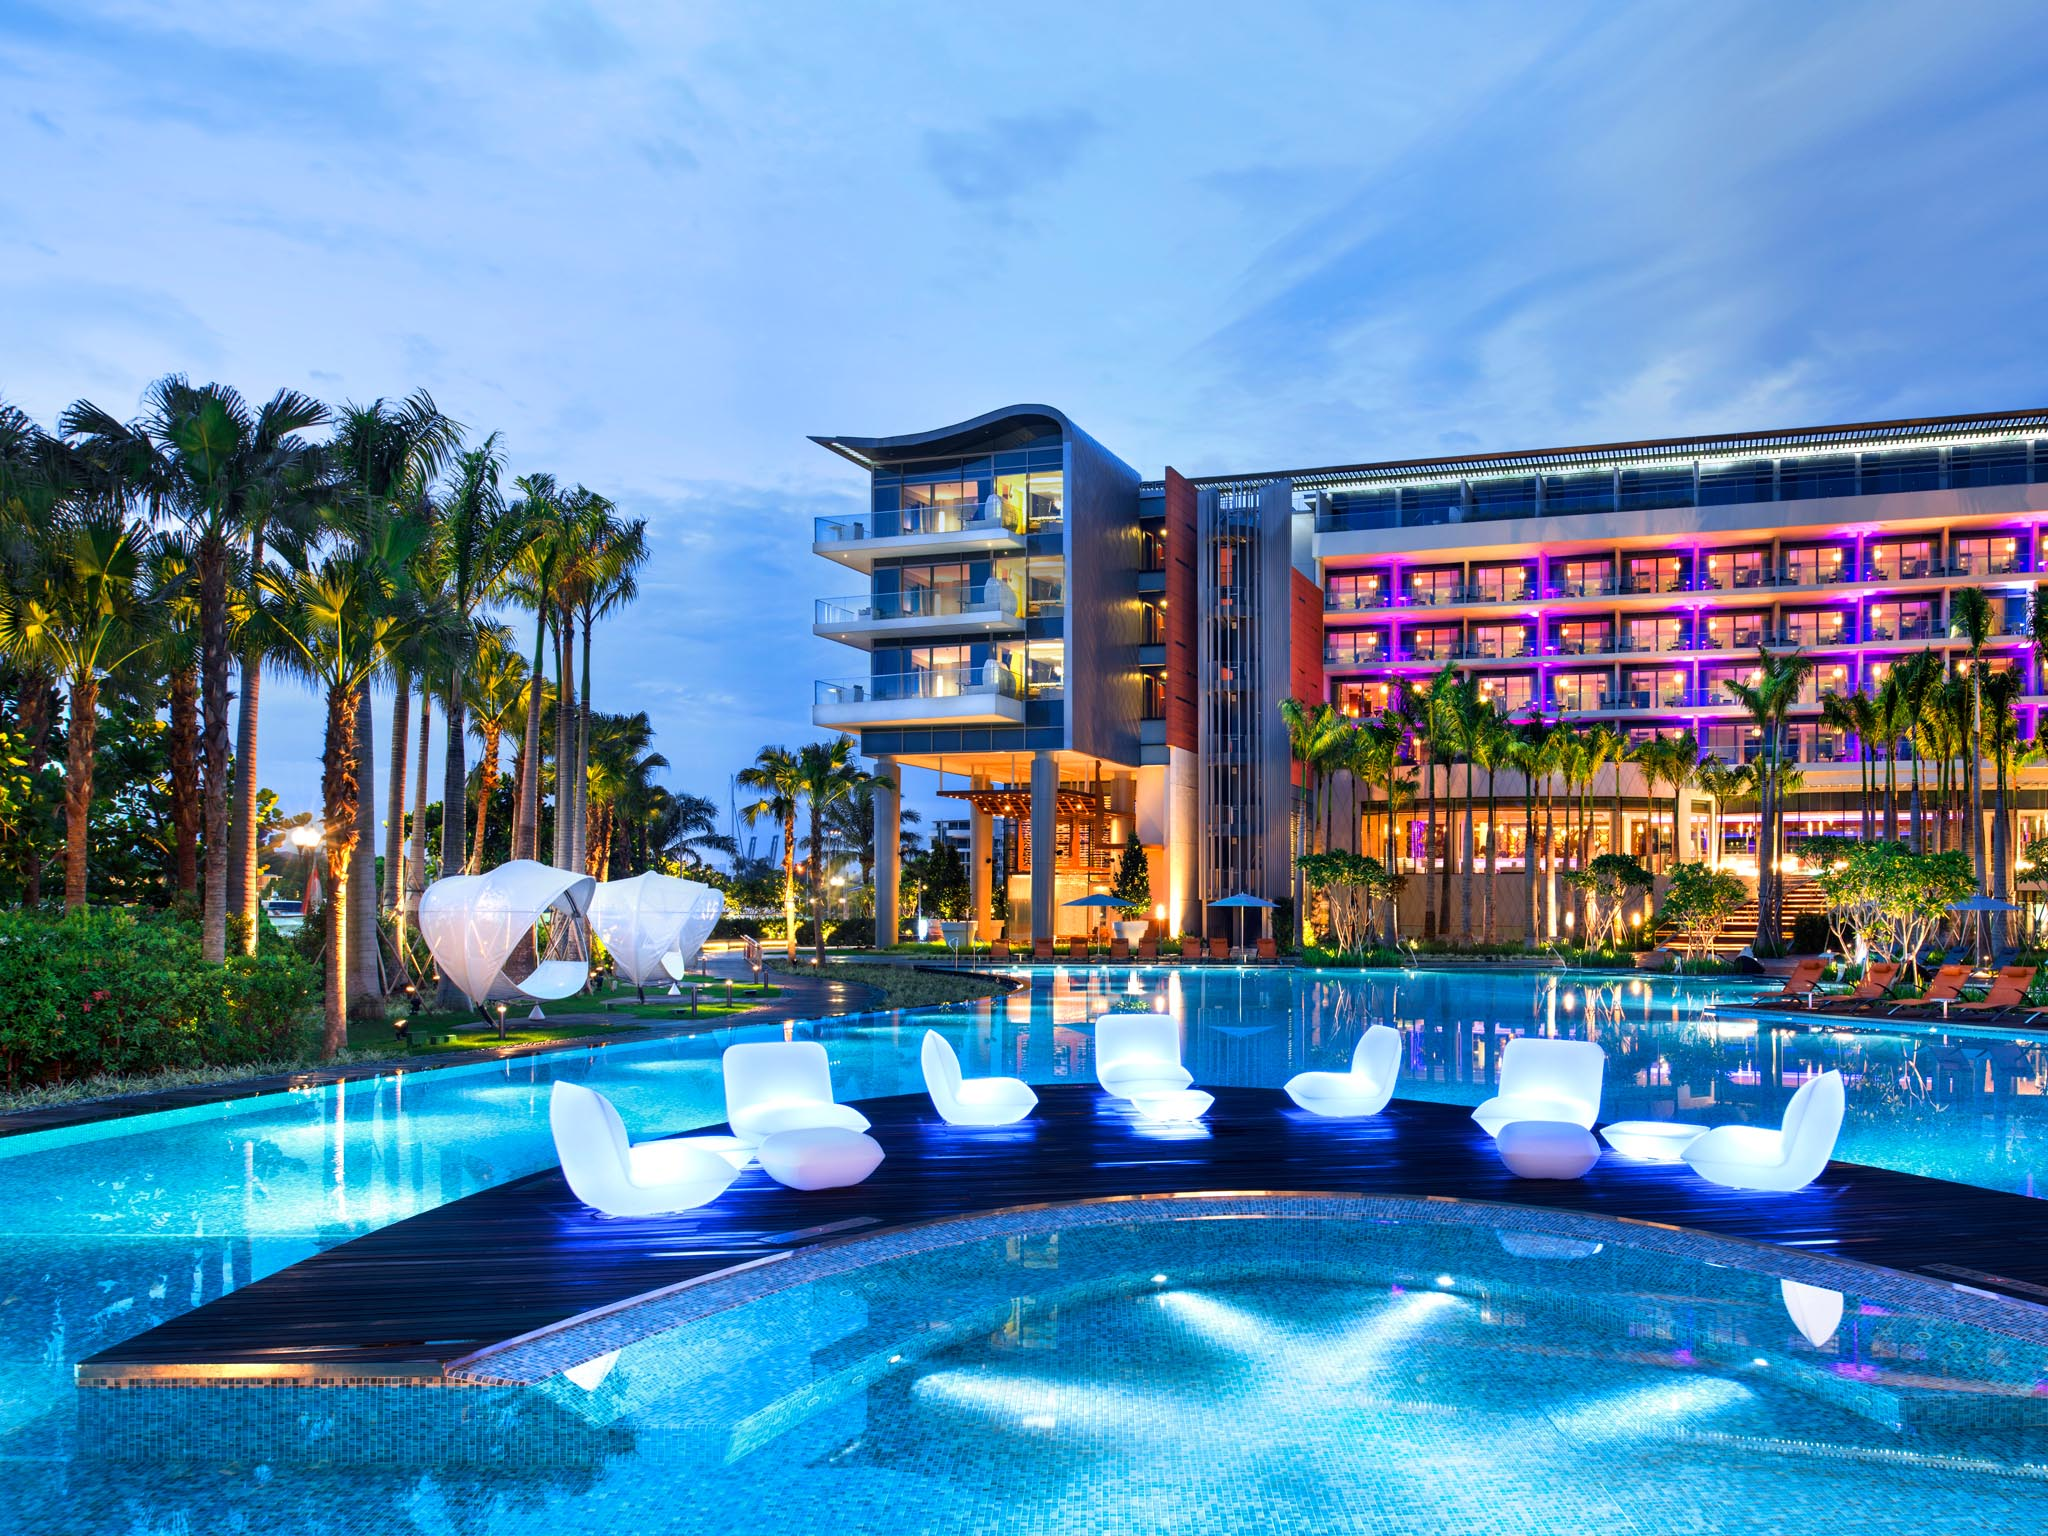 Glamorous 5 Star Resort In Sentosa Cove